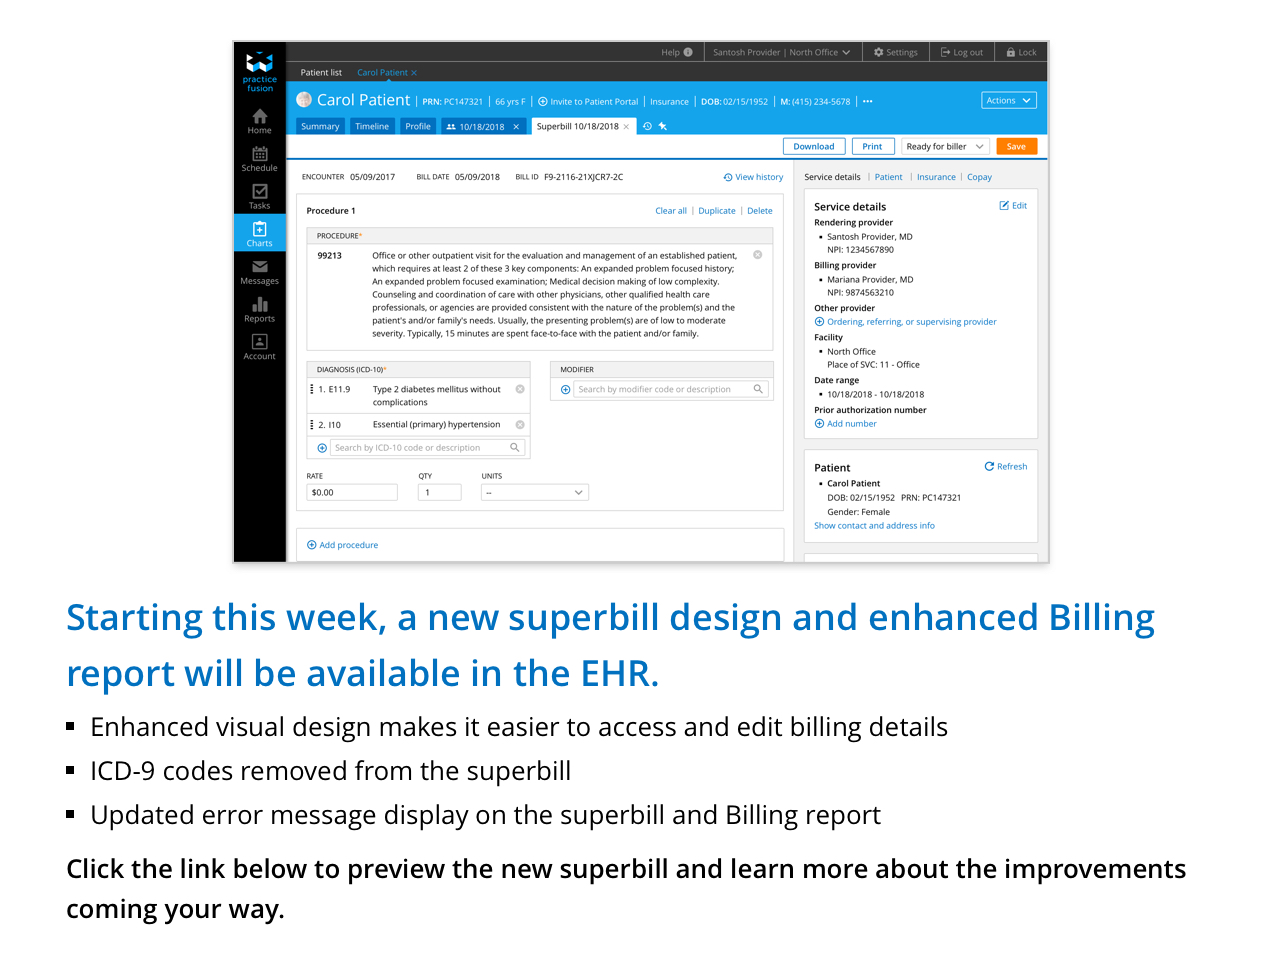 Enhanced visual design makes it easier to access and edit billing details. ICD-9 codes removed from the superbill. Updated error message display on the superbill and Billing report. Click the link below to preview the new superbill and learn more about the imrovements coming your way.